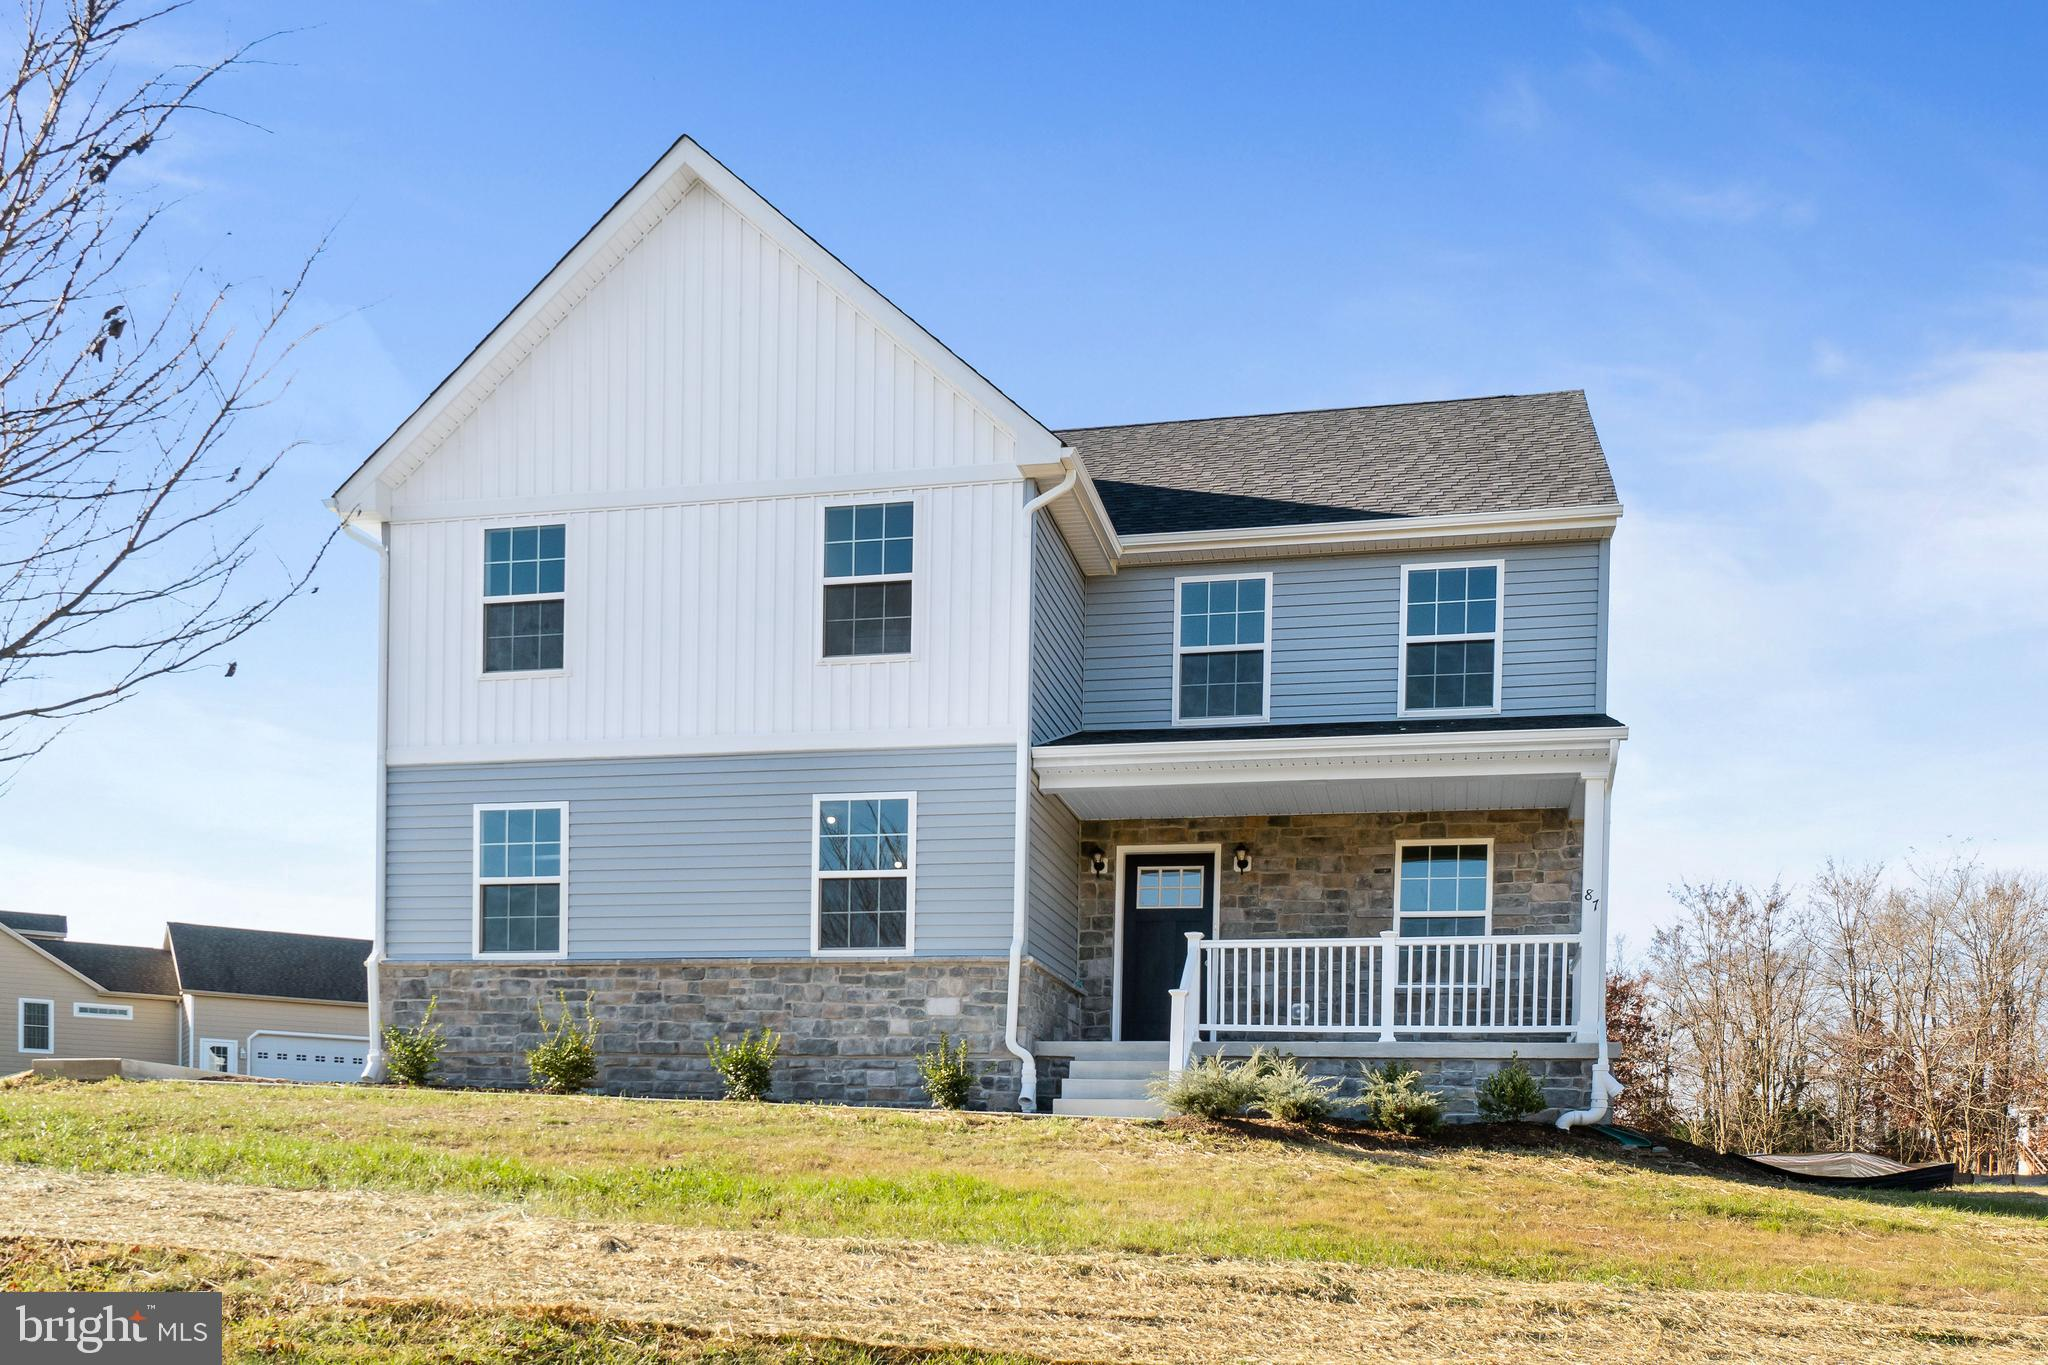 RARE QUICK DELIVERY NEW CONSTRUCTION BY LARSON'S CUSTOM HOMES. THIS FAIR HILL LOCATION IS ONLY 6 MIN